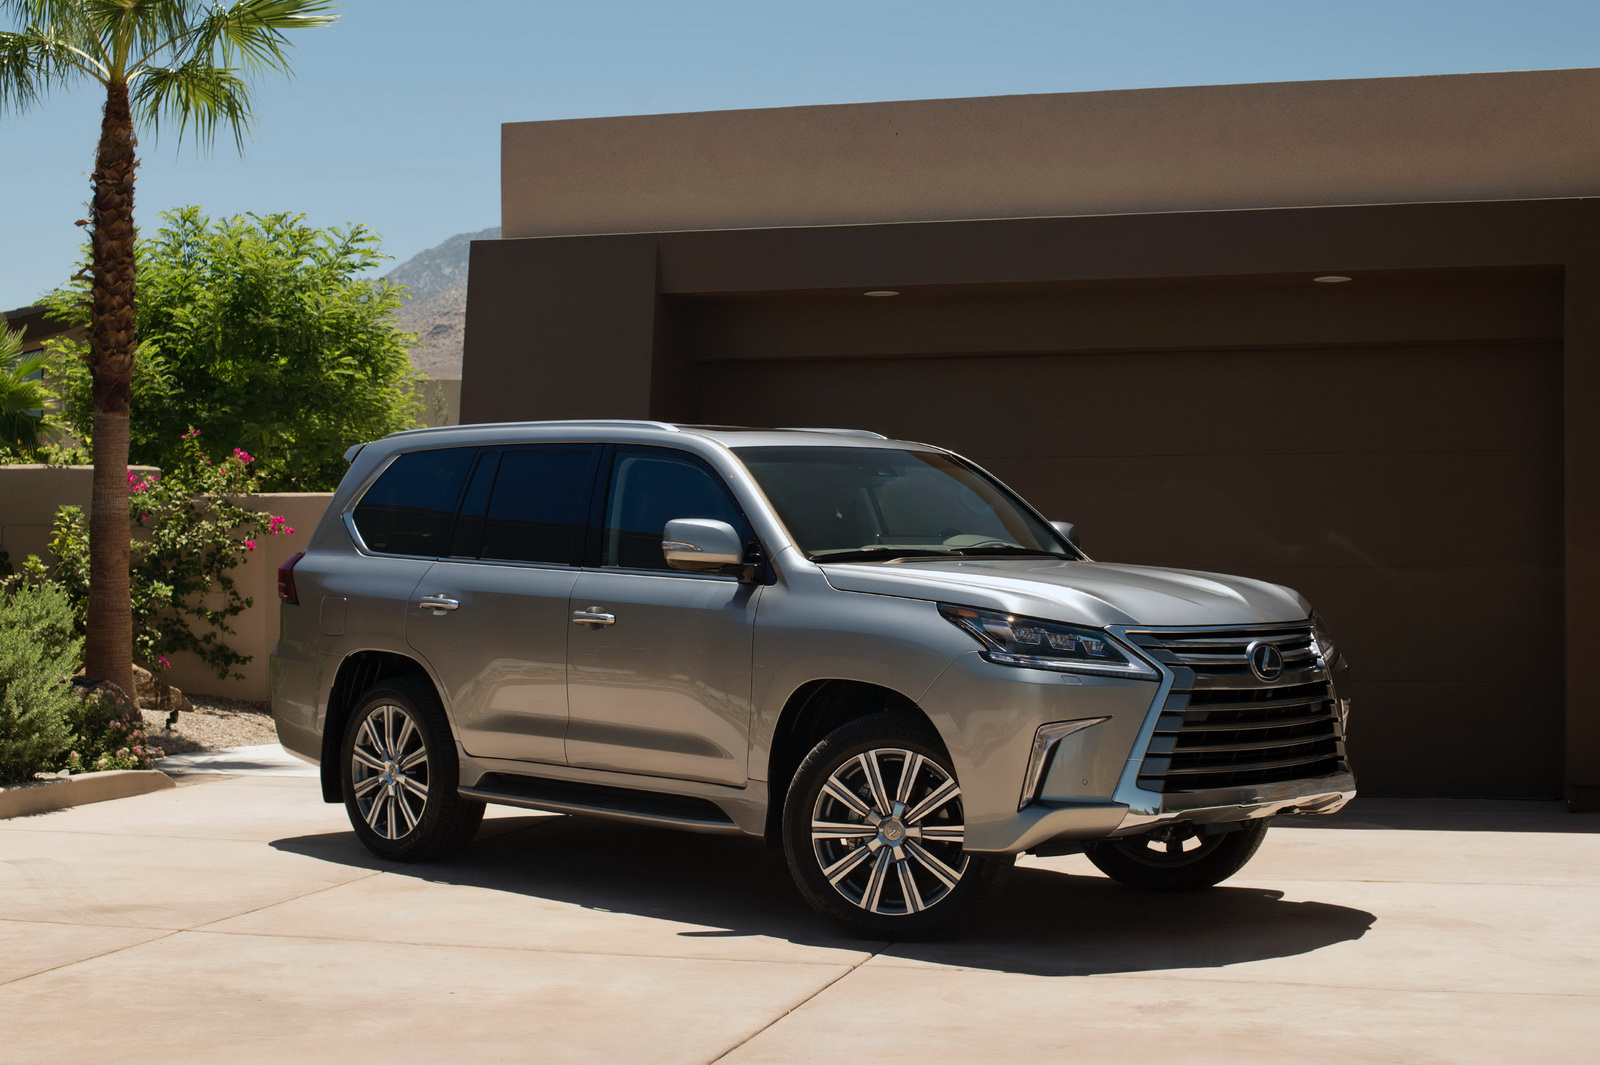 Luxury Suv: 2016 Lexus LX570 SUV Photo Gallery